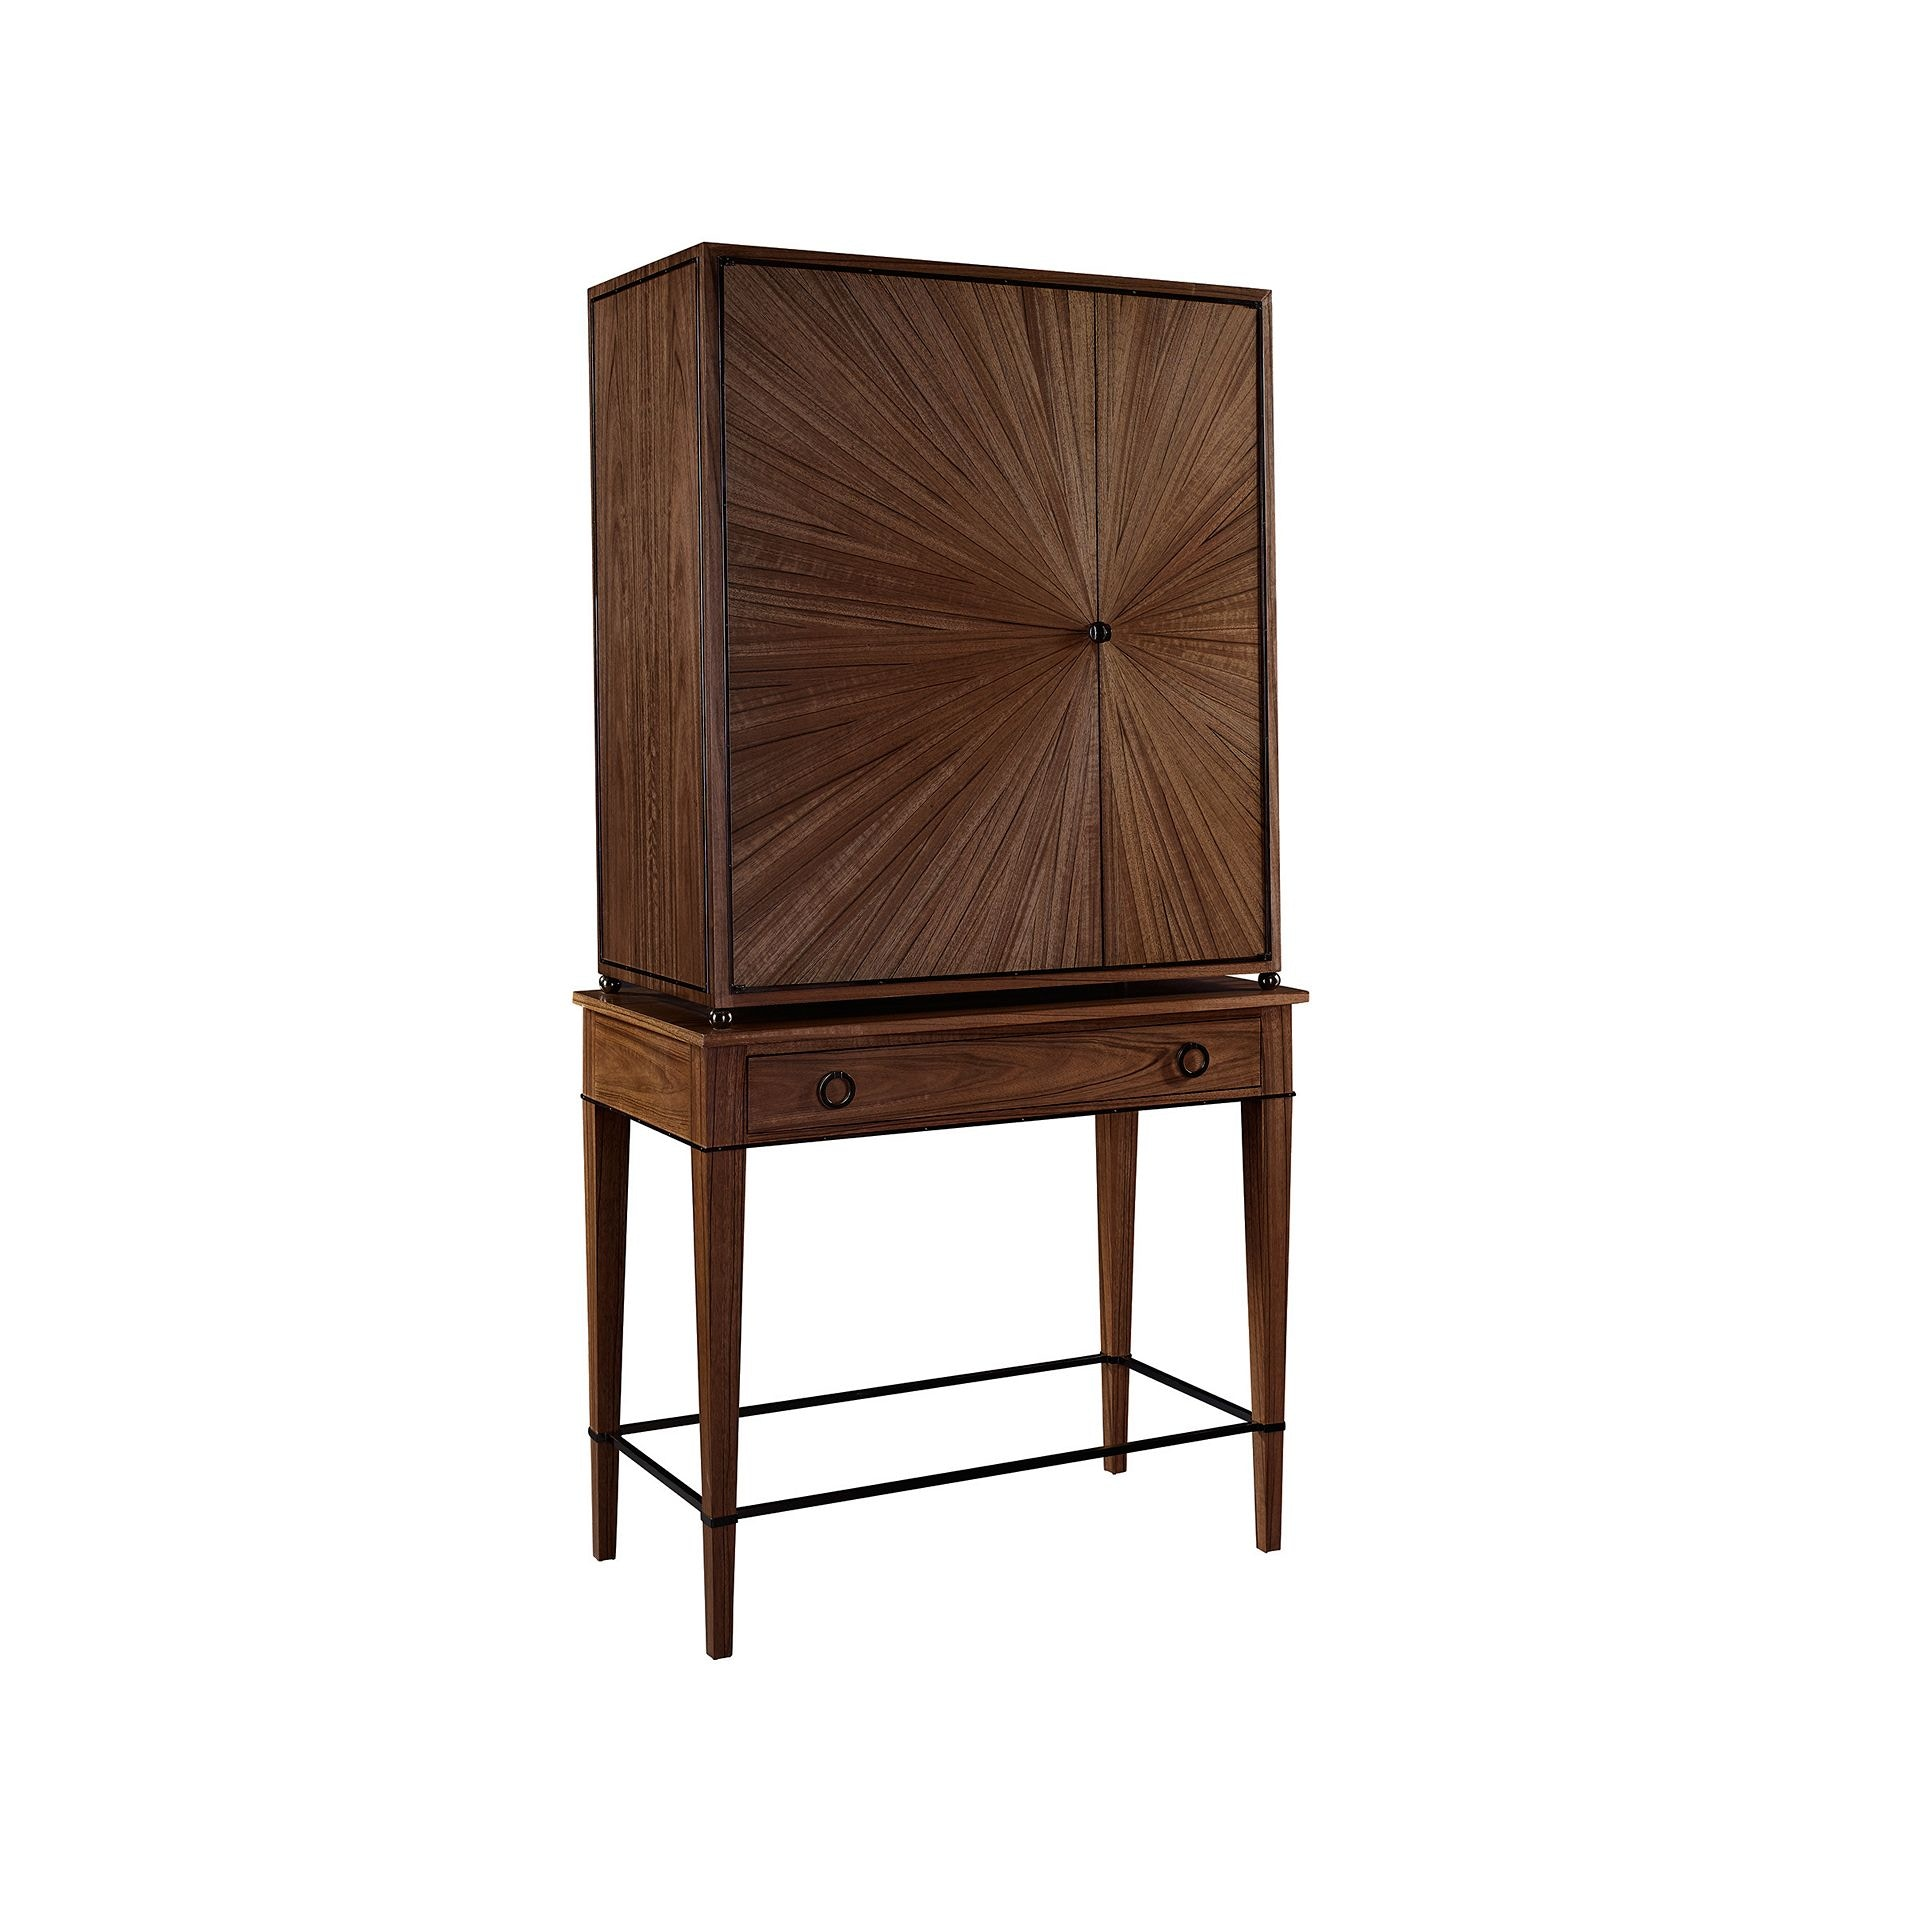 Ordinaire Henredon Furniture 1945 Collection Ellington Circle Bar Cabinet Ba  2201 49 803B U0026 803D